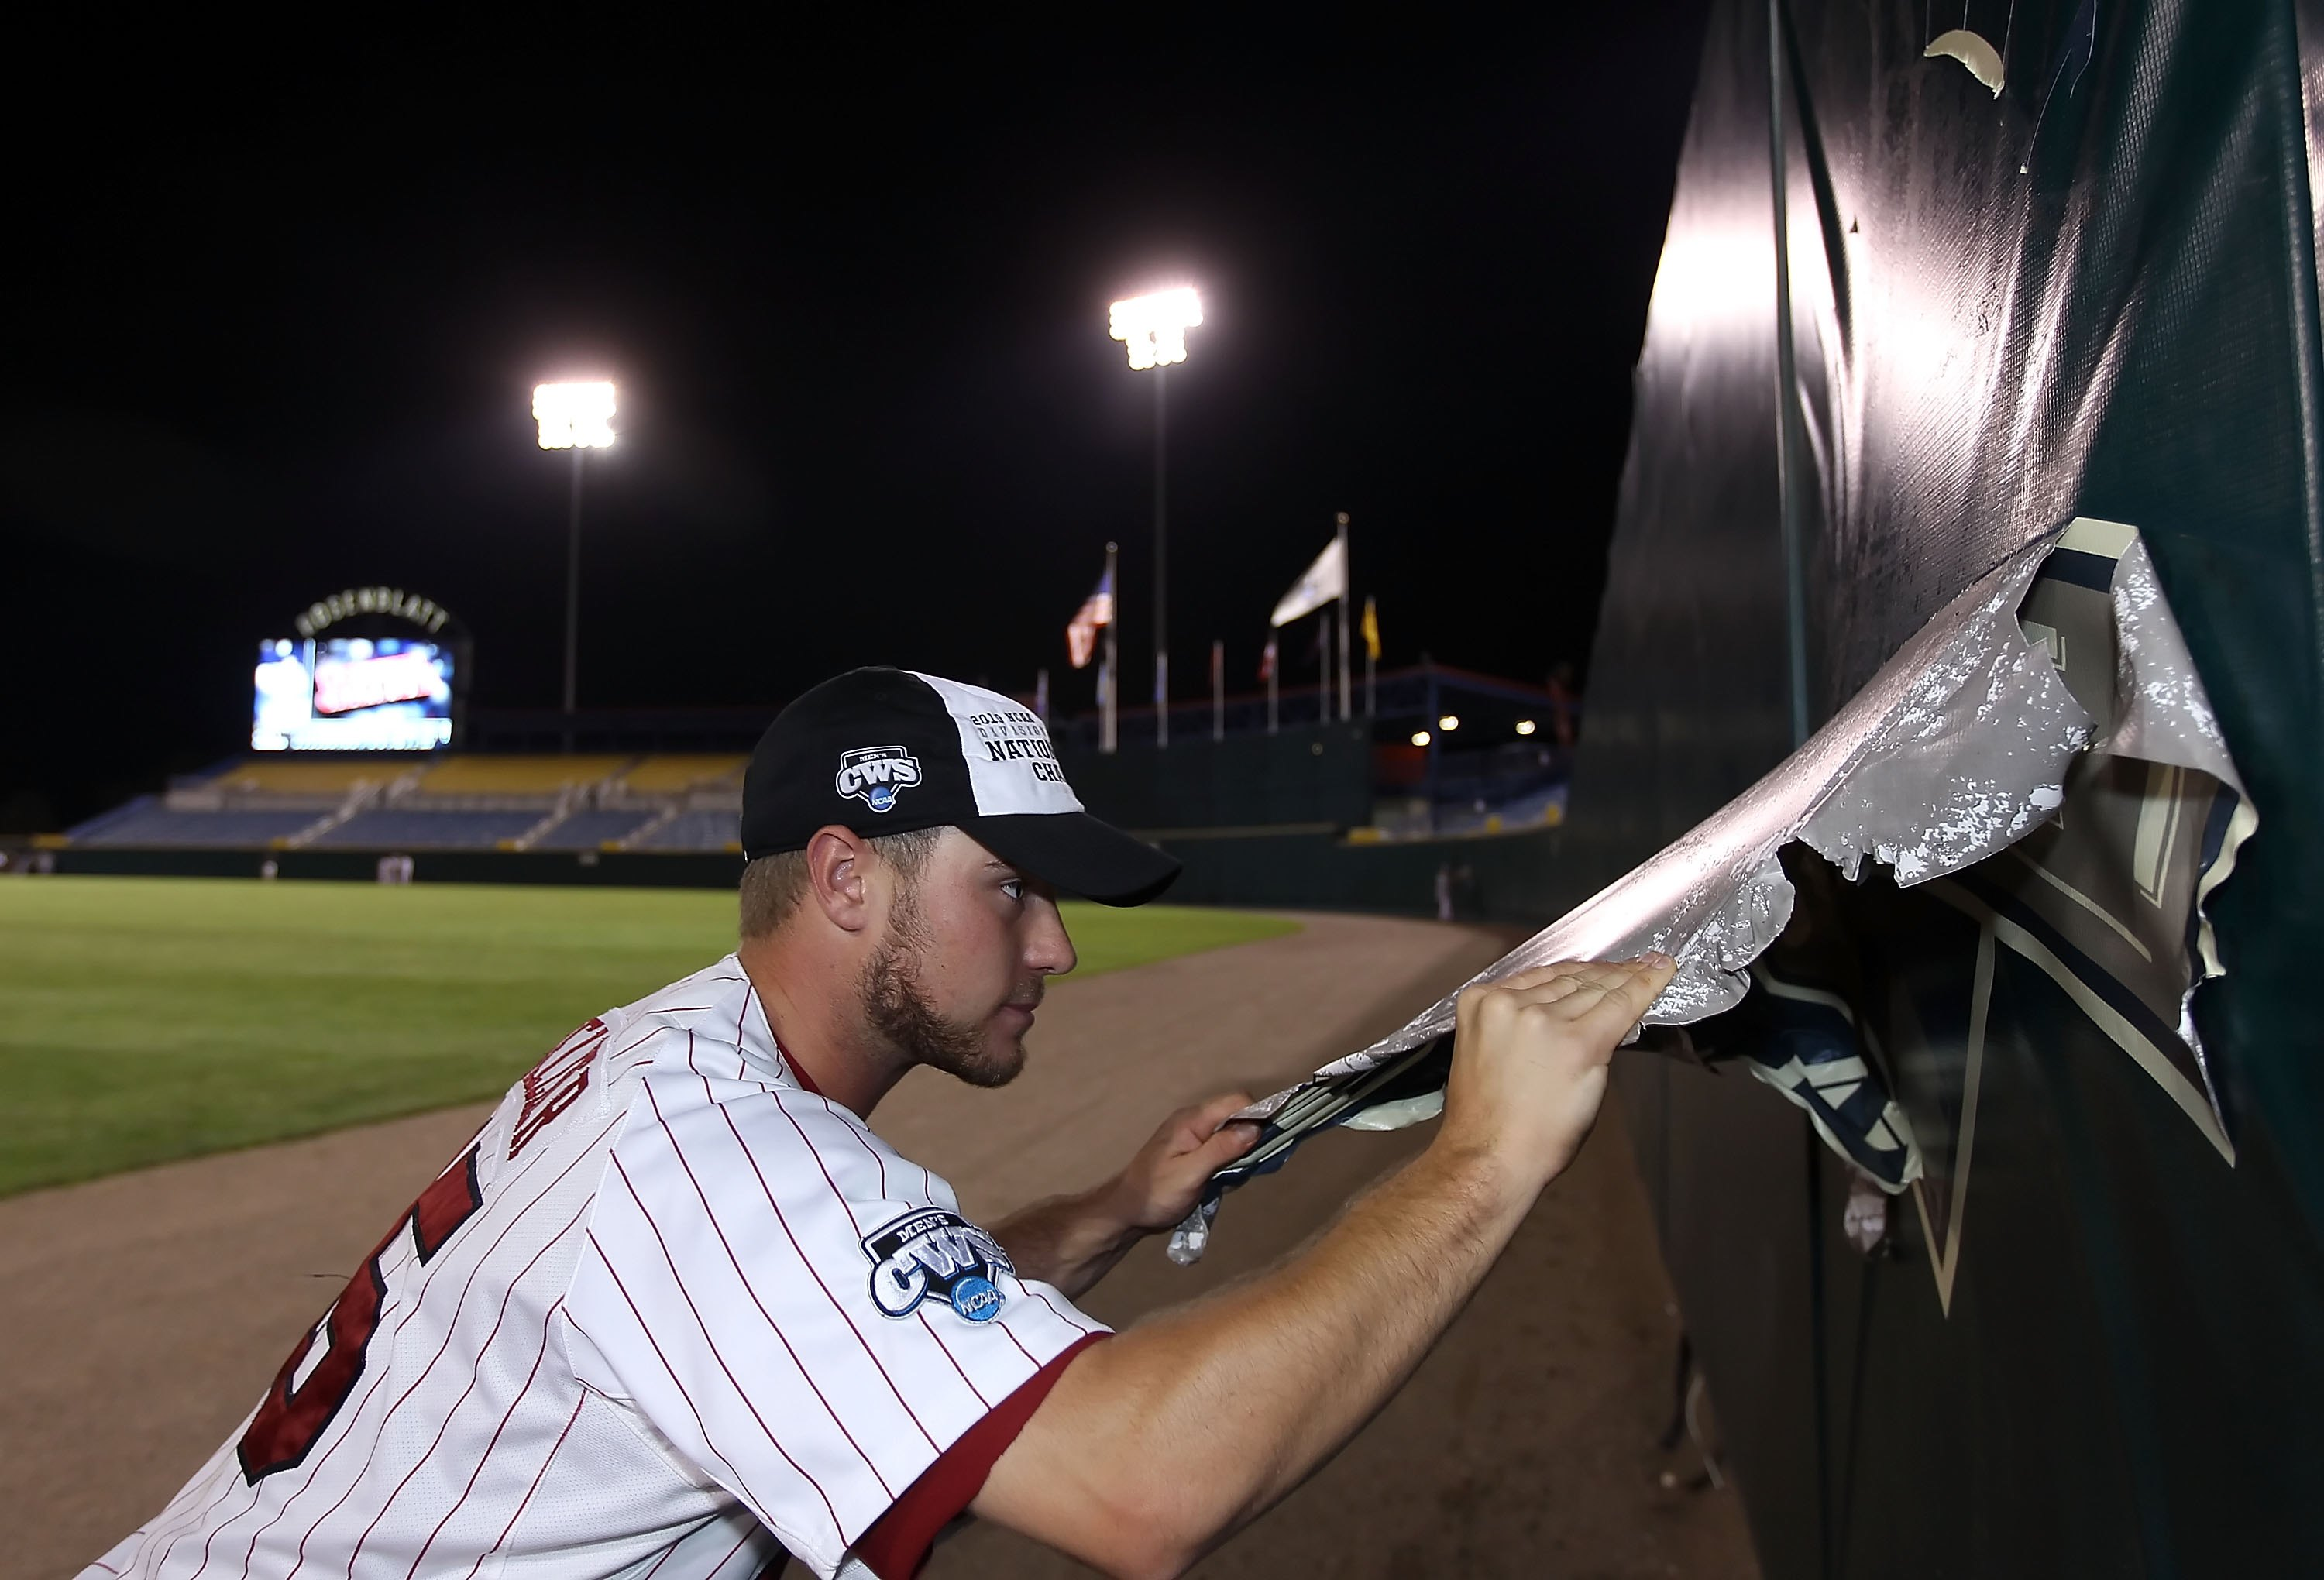 OMAHA, NE - JUNE 29:  Nolan Belcher #15 of the South Carolina Gamecocks tears down a logo from the outfield wall after defeating the UCLA Bruins in game 2 of the men's 2010 NCAA College Baseball World Series at Rosenblatt Stadium on June 29, 2010 in Omaha